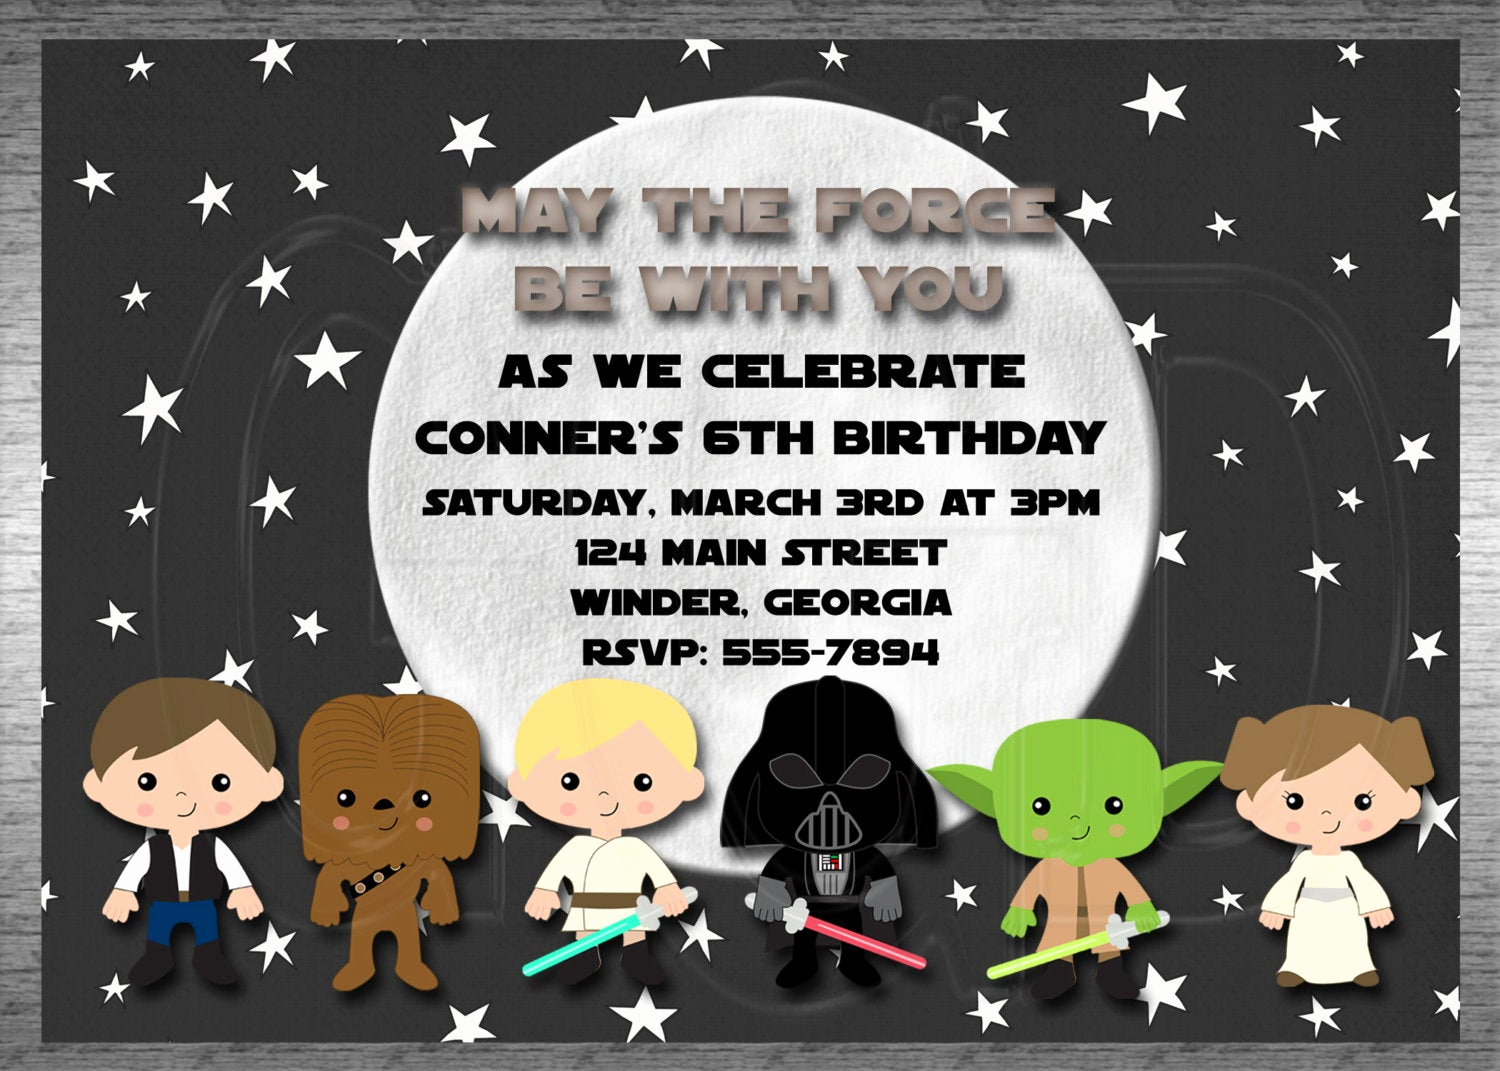 Star Wars Invitation Templates Free Inspirational Galaxy Star Wars Invitation Inspired Boy or by